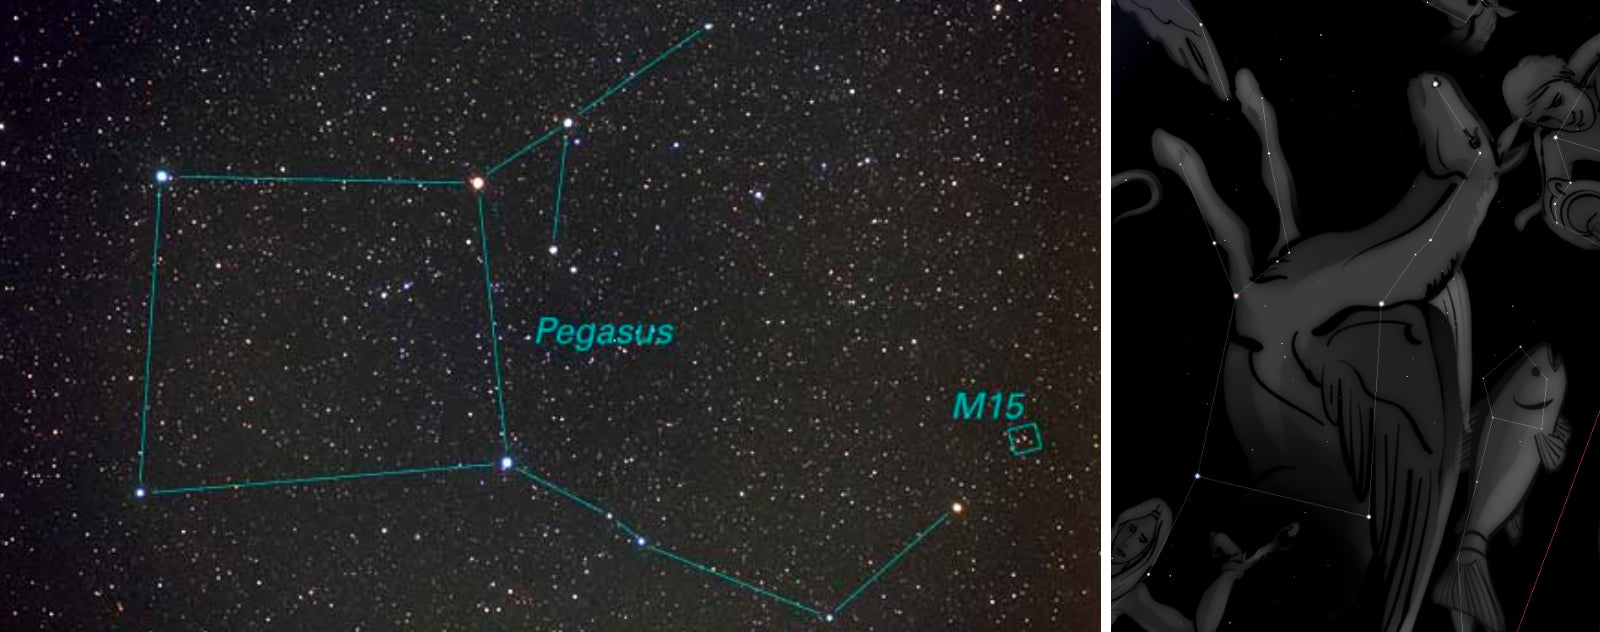 Constellation du Pégase